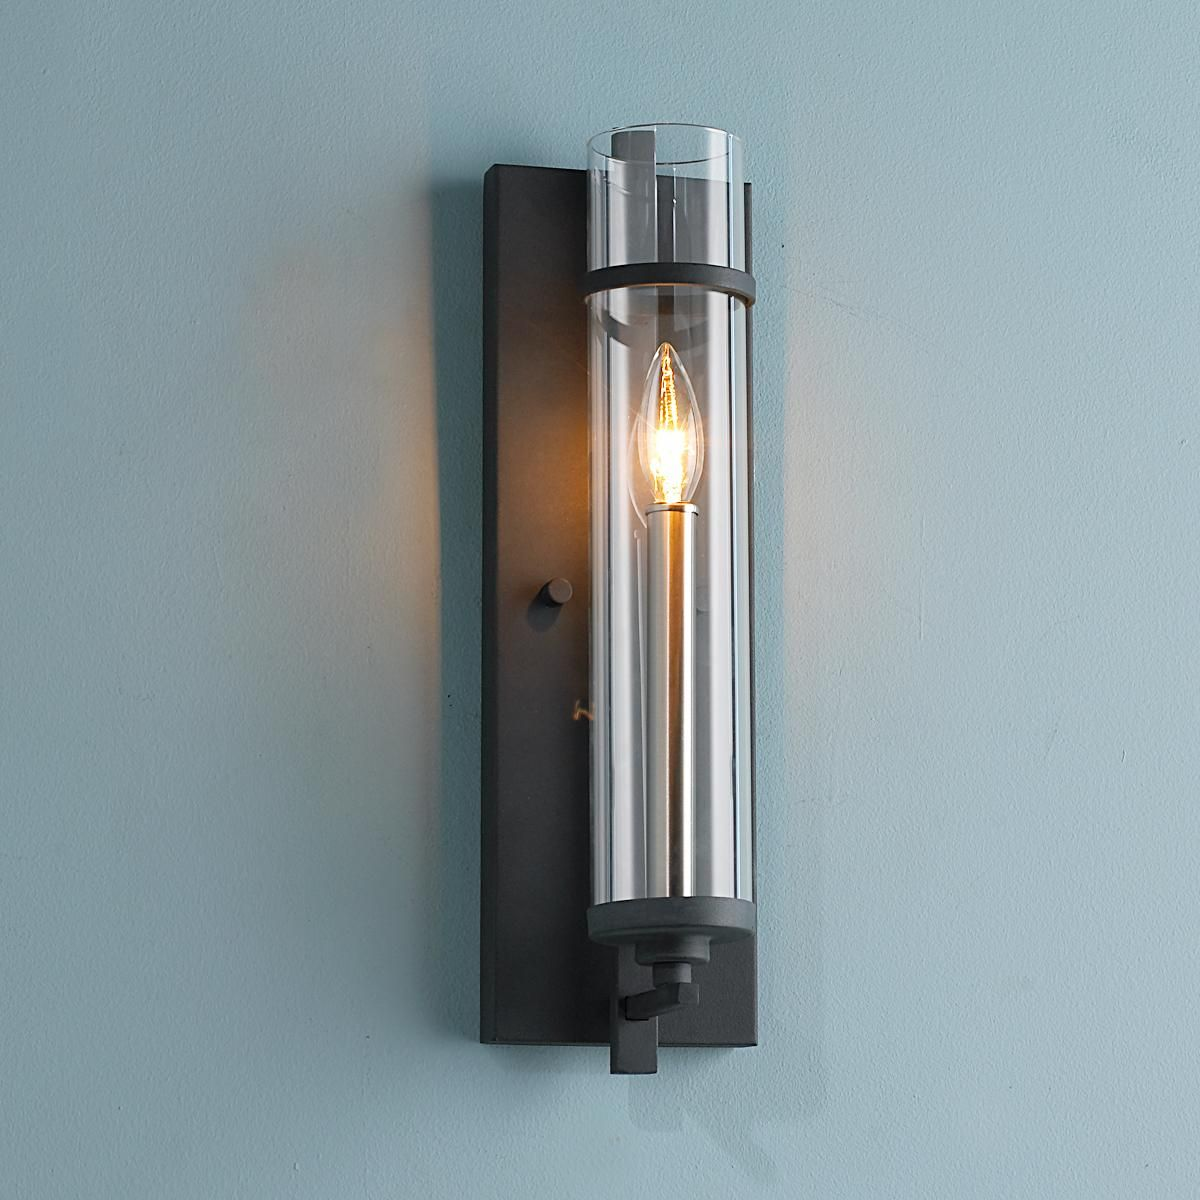 Clearly Modern Glass Tube Wall Sconce Wall Sconces Bedroom Modern Wall Sconces Indoor Wall Sconces